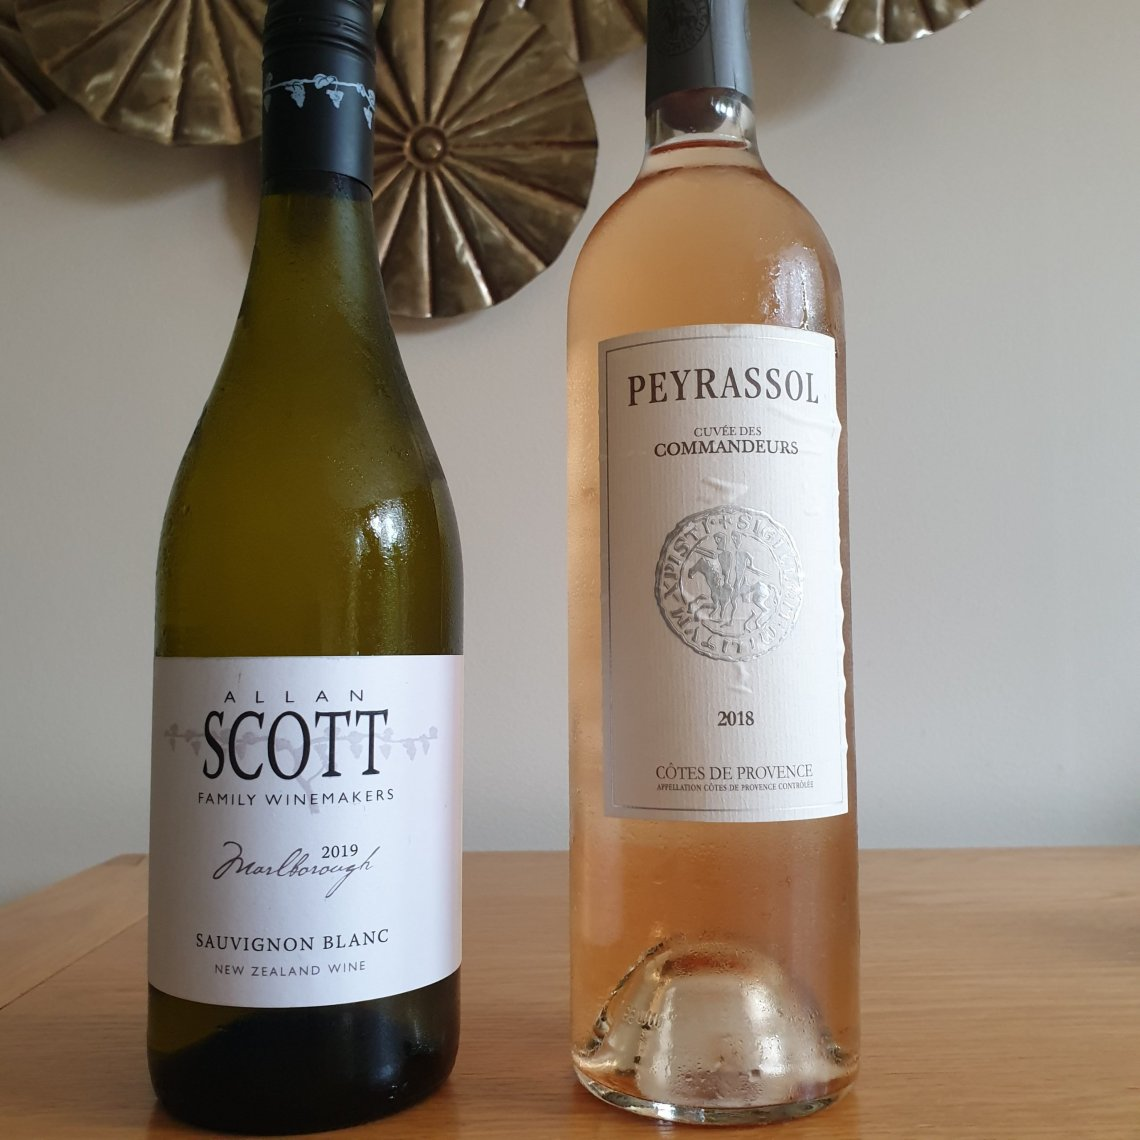 Allan Scott white wine and Peyrassol rosé wine.